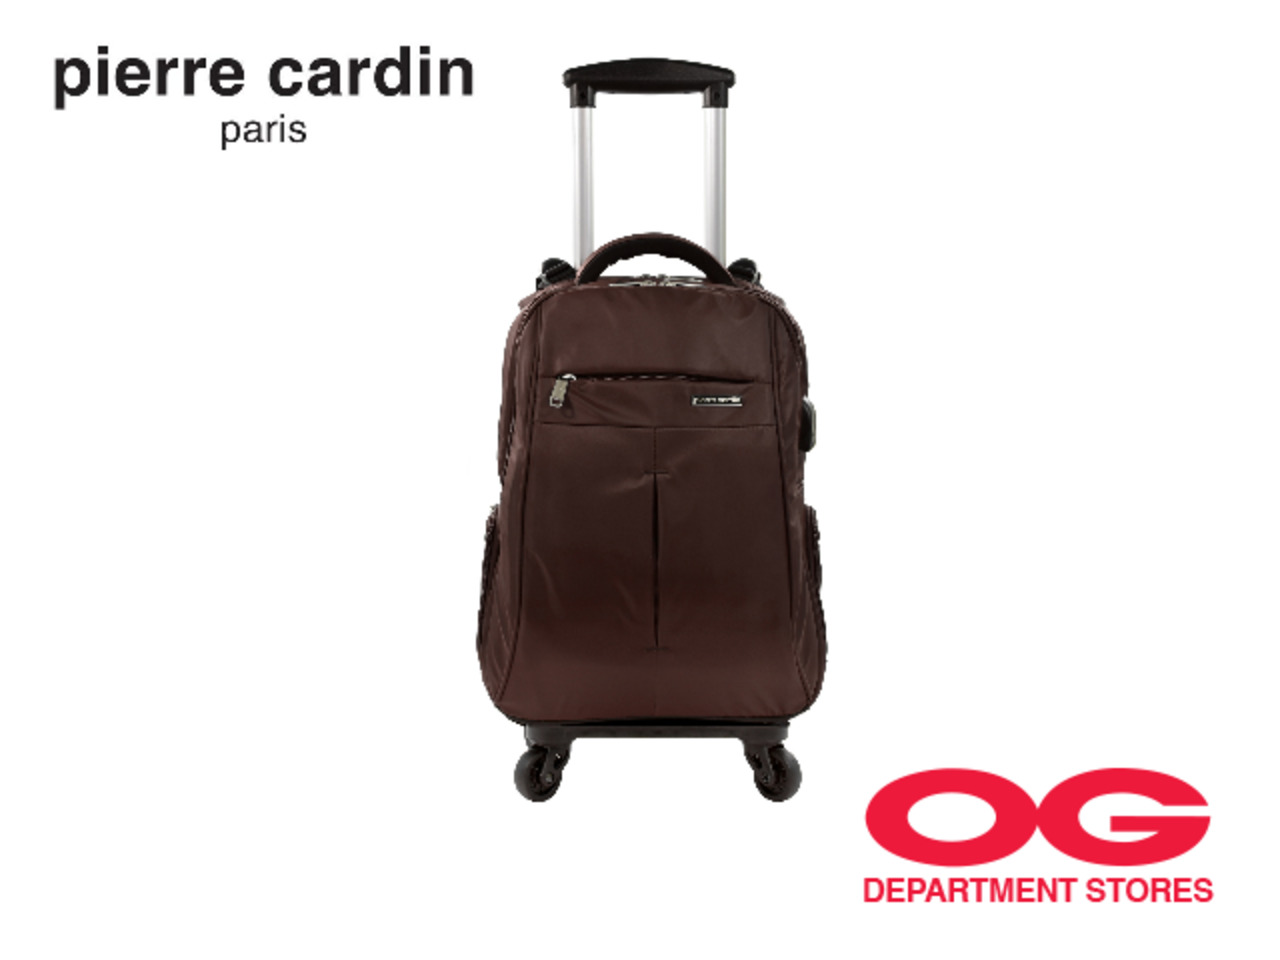 "PIERRE CARDIN Backpack With Detachable Trolley And USB Port @ Bundle 18"" + 20"" at $129"